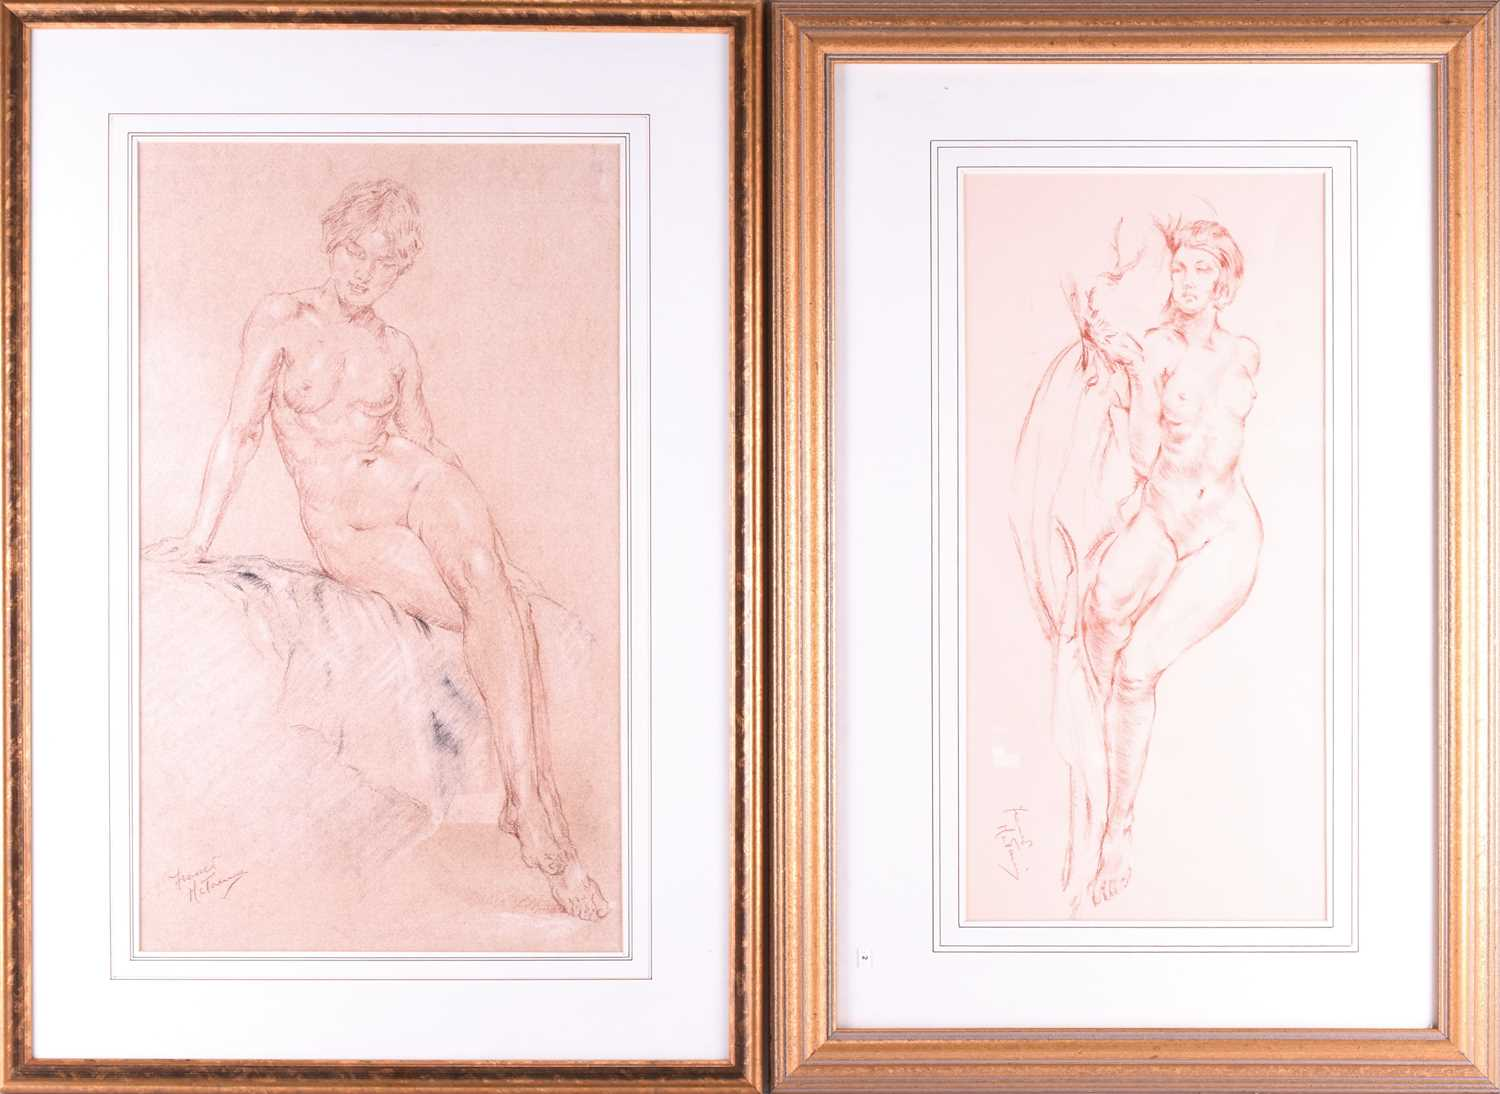 Lot 34 - Franco Matania (1922-2006) Italian/British, two pastel studies of female nudes, each framed and